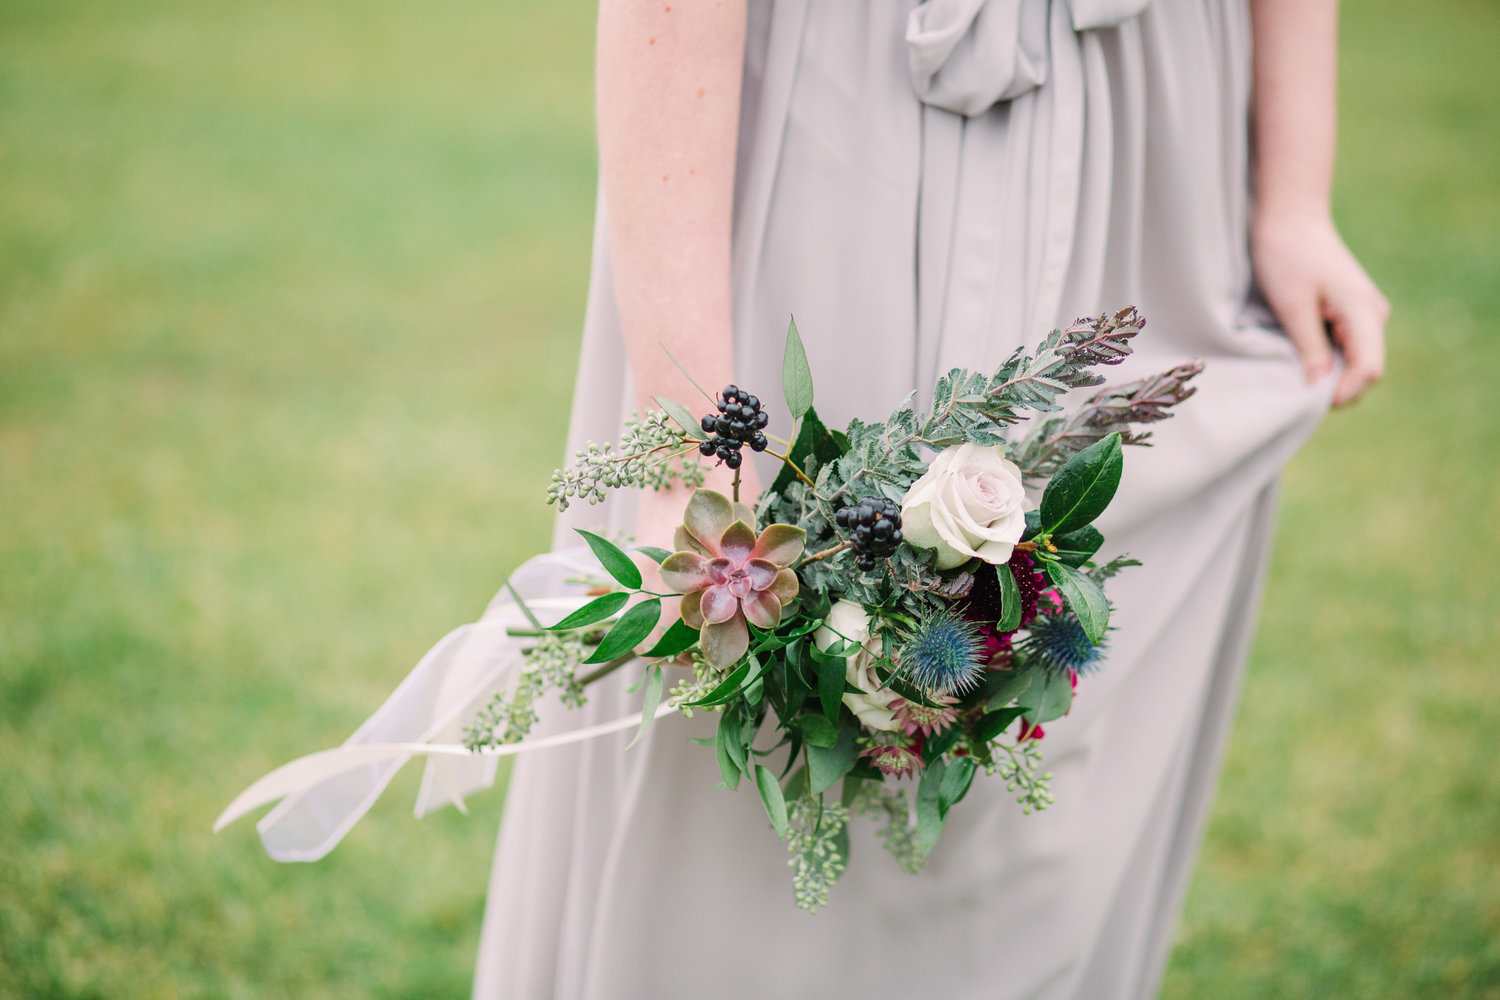 des moines and ankeny iowa wedding florists